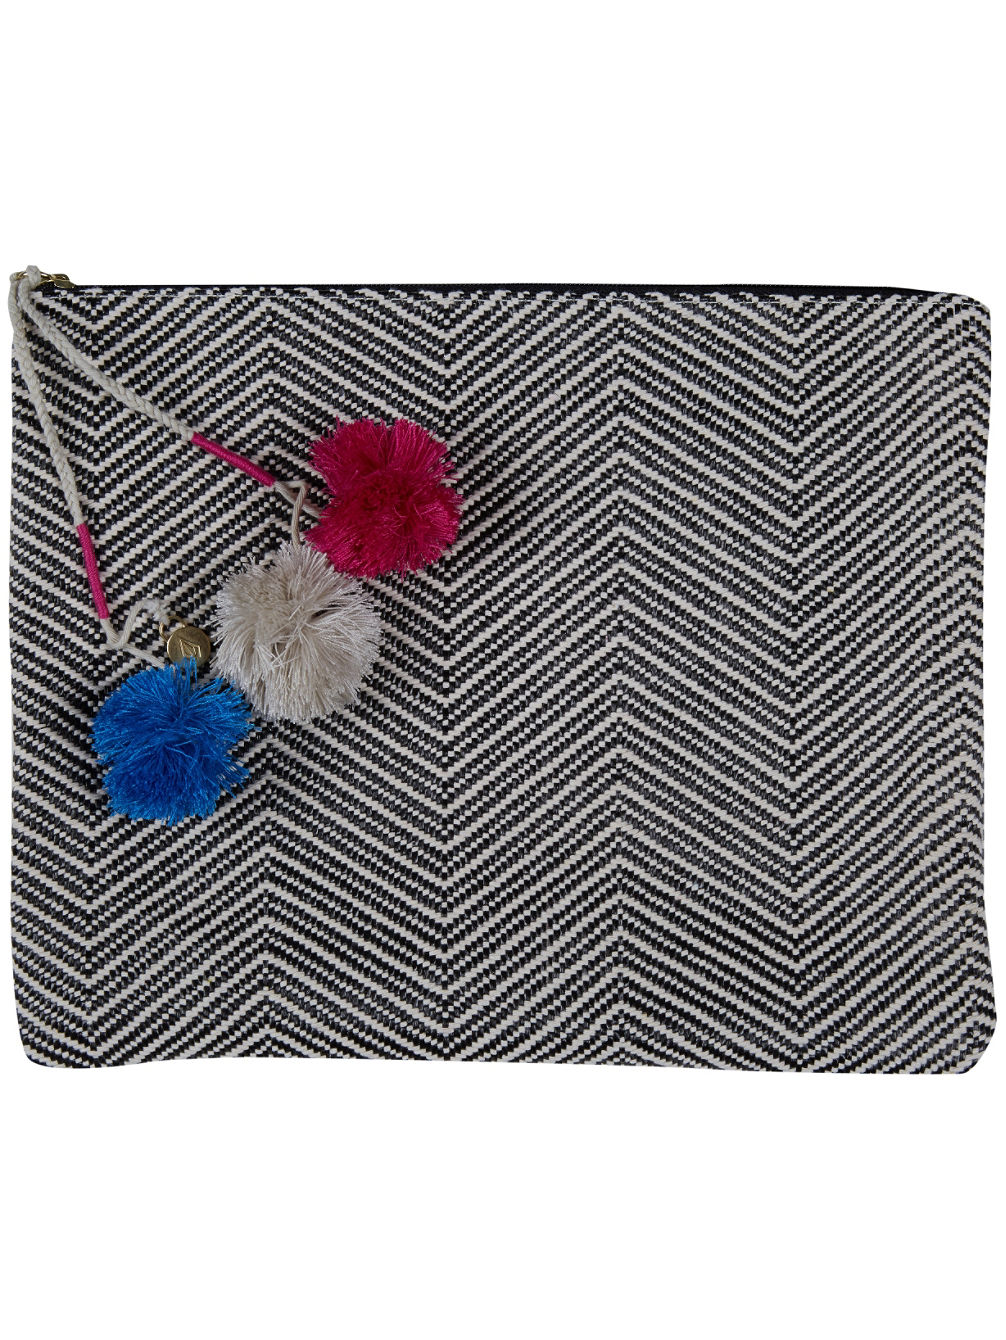 The Market Clutch Bag